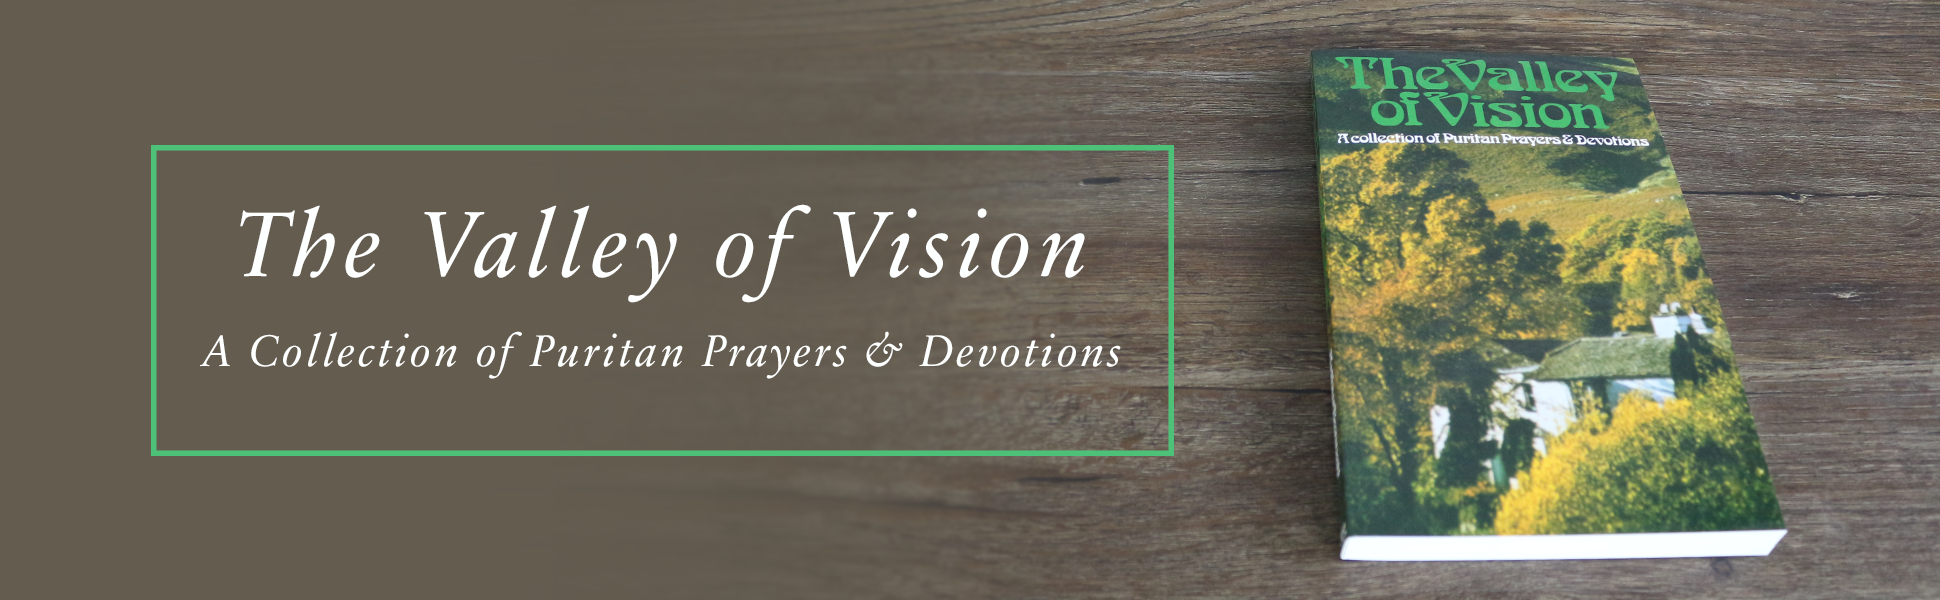 The valley of vision a collection of puritan prayers devotions valley of vision fandeluxe Images